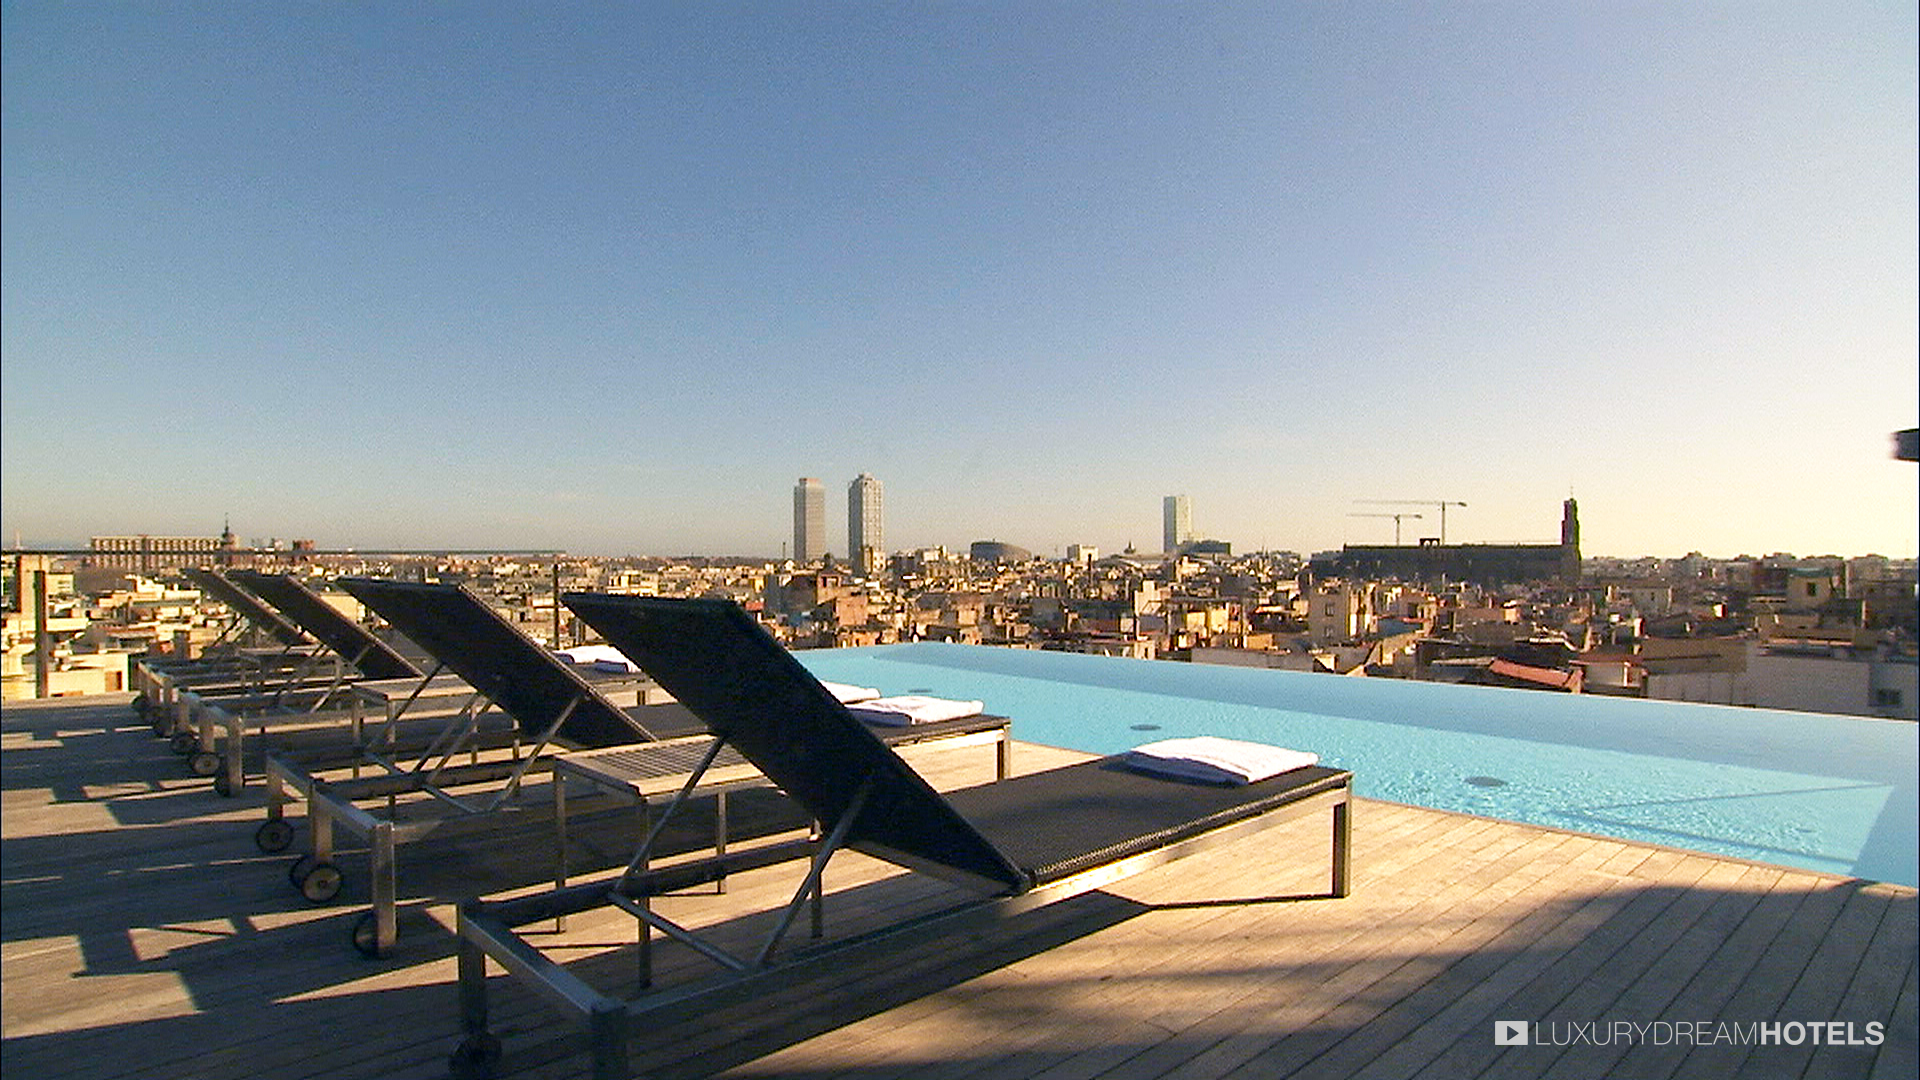 Grand Hotel Central Barcelona Luxury Hotel, Grand Hotel Central, Barcelona, Spain - Luxury Dream Hotels